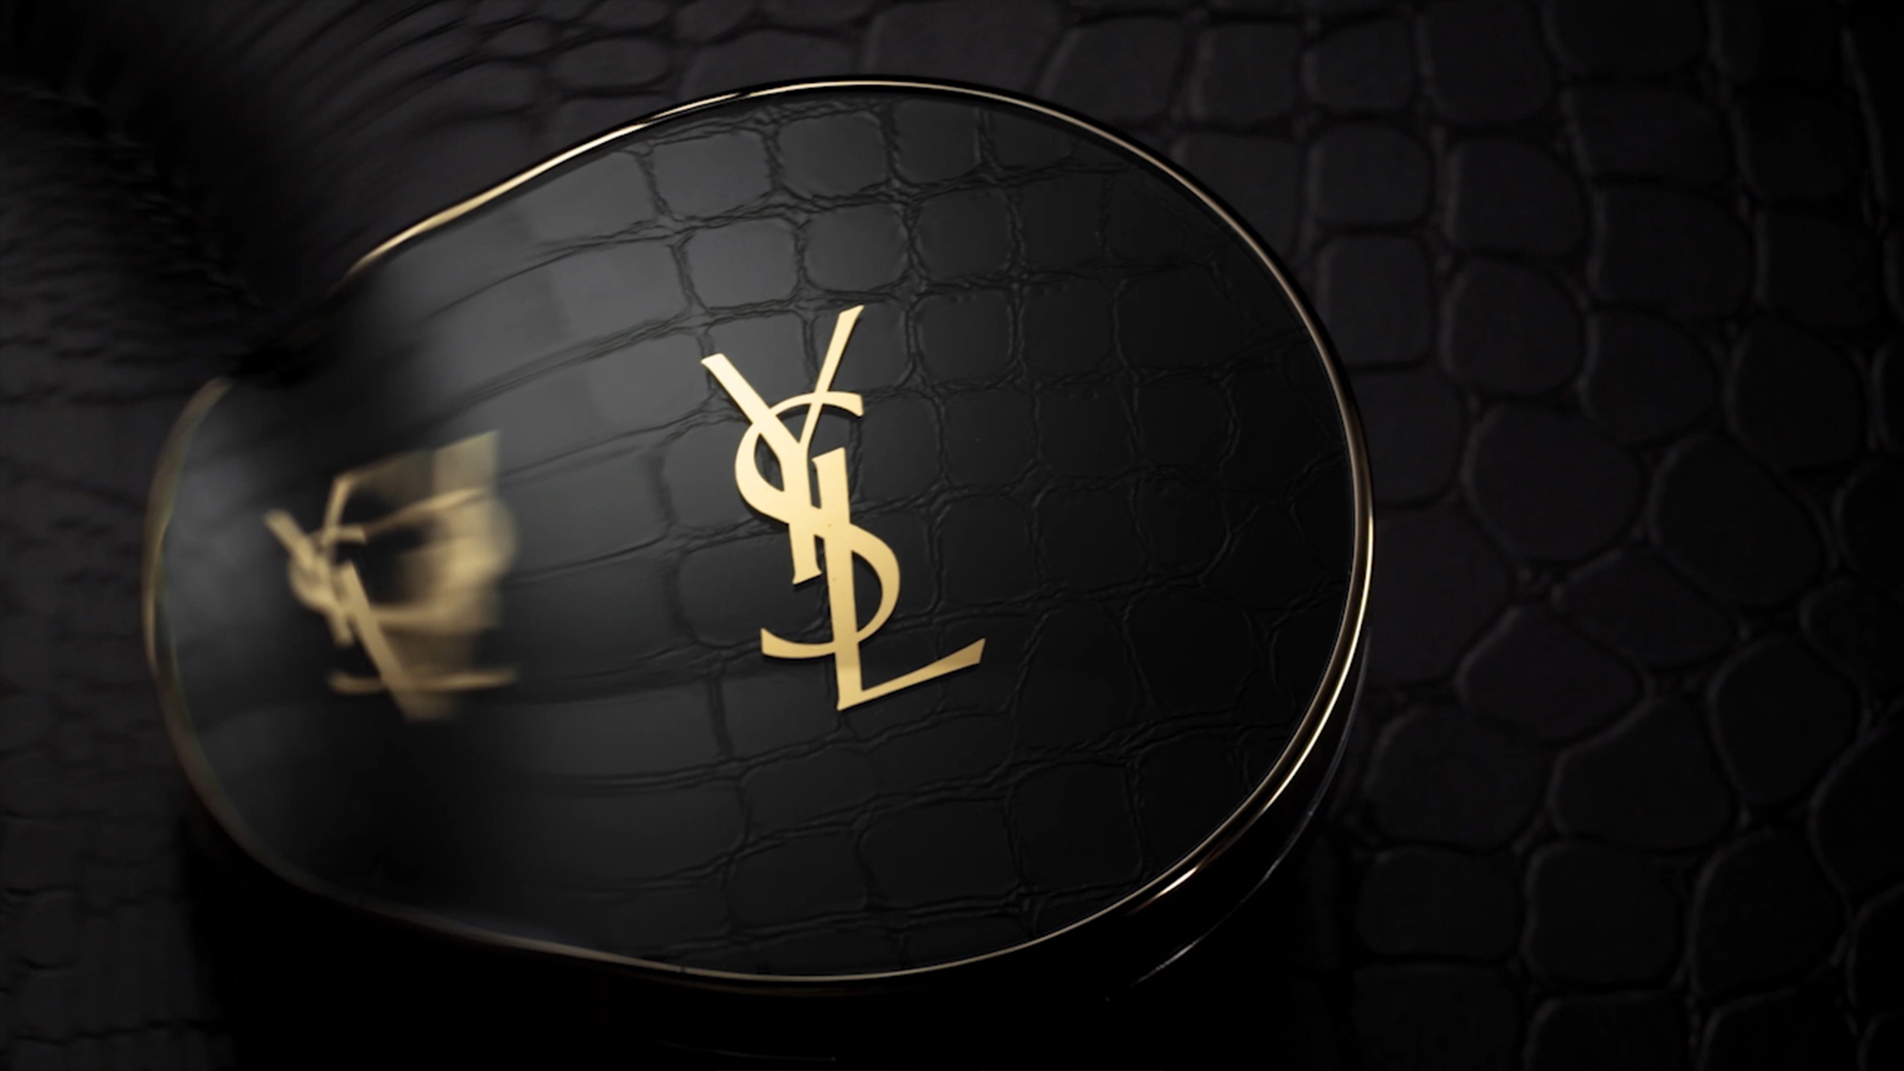 CARLA COSTE / ART DIRECTOR Index YSL – Cushion Leather Edition